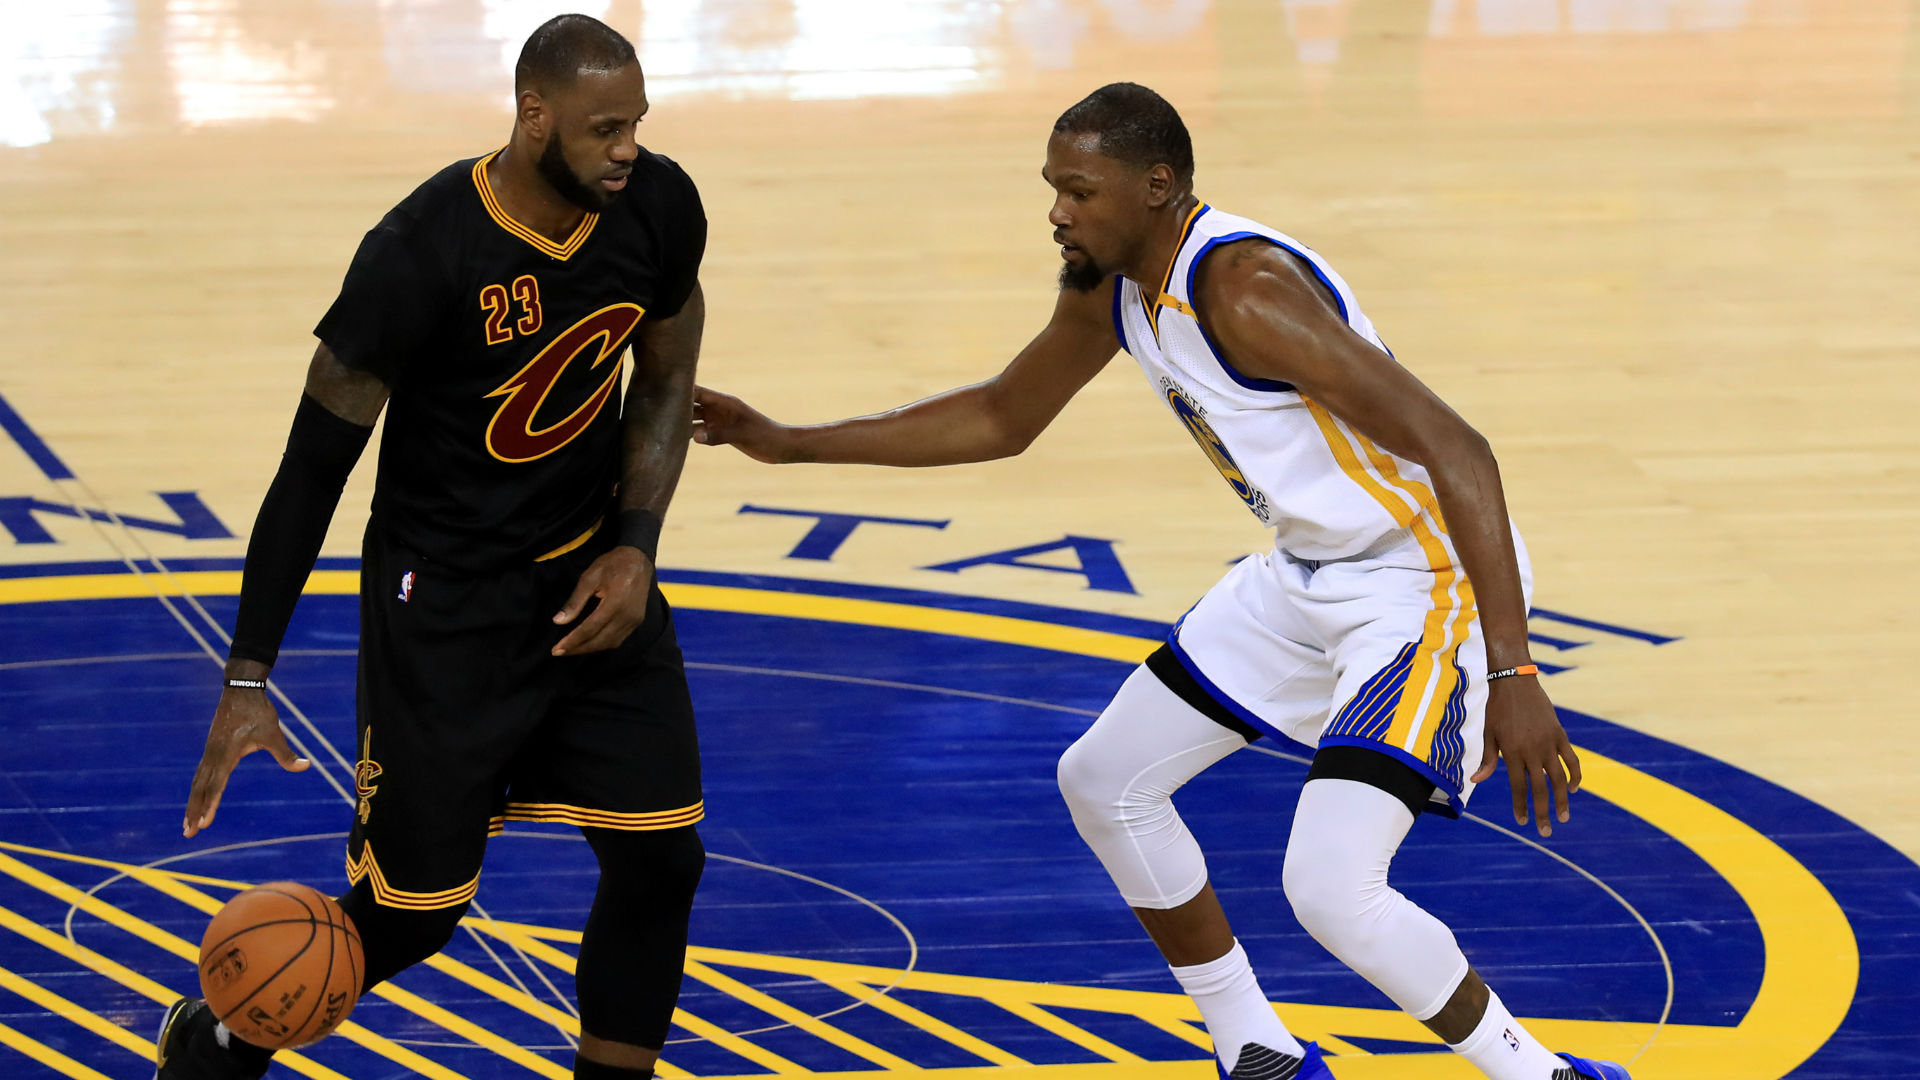 Cavs forward Le Bron James defended by Warriors forward Kevin Durant